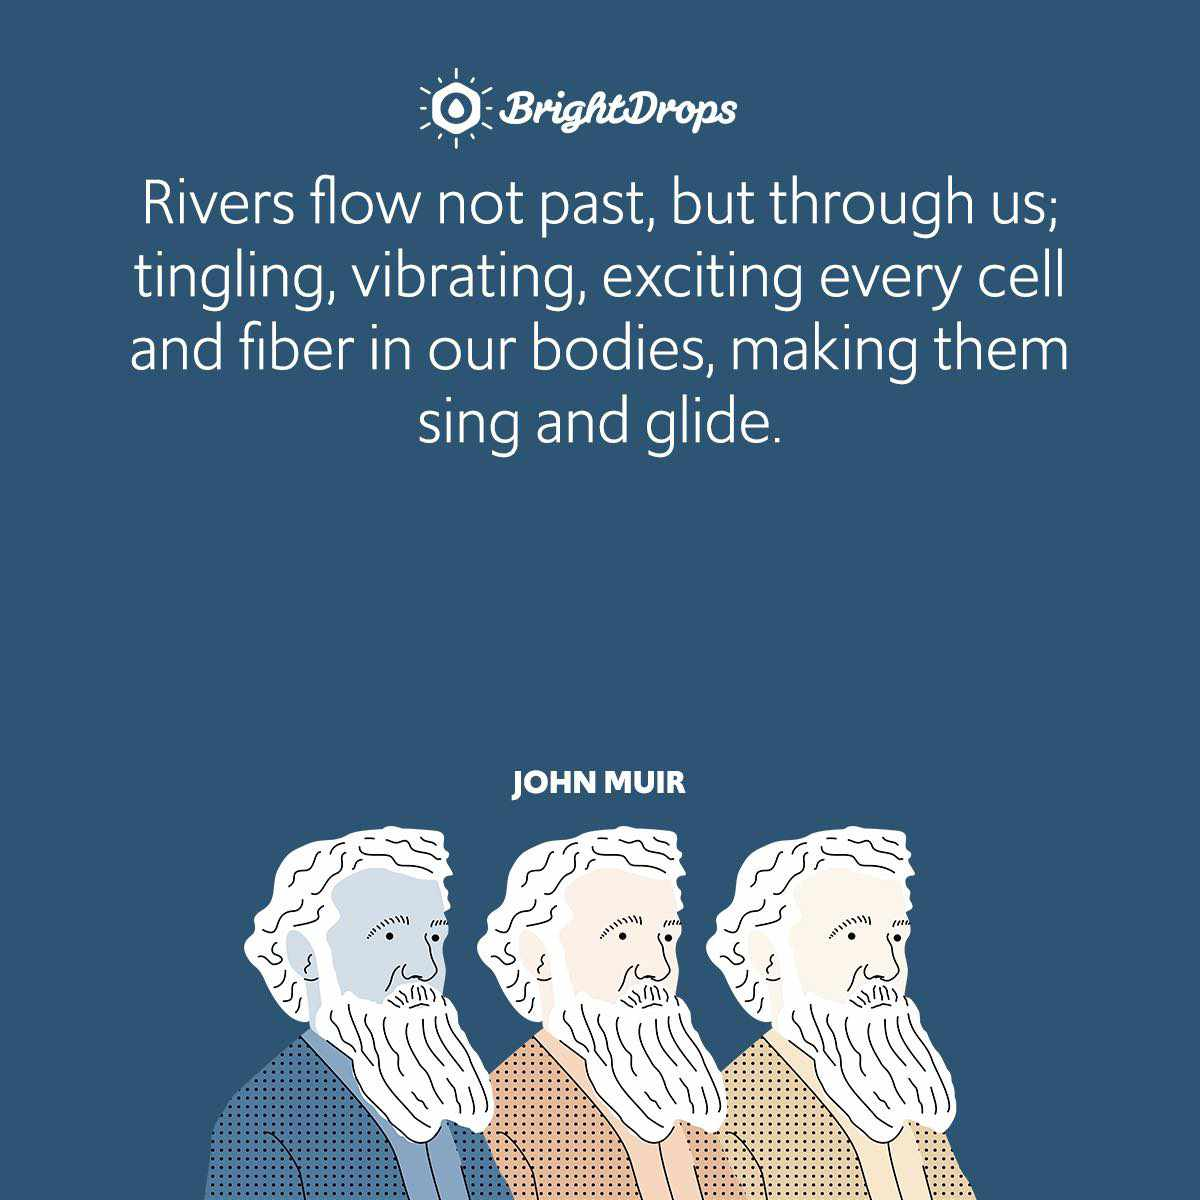 Rivers flow not past, but through us; tingling, vibrating, exciting every cell and fiber in our bodies, making them sing and glide.